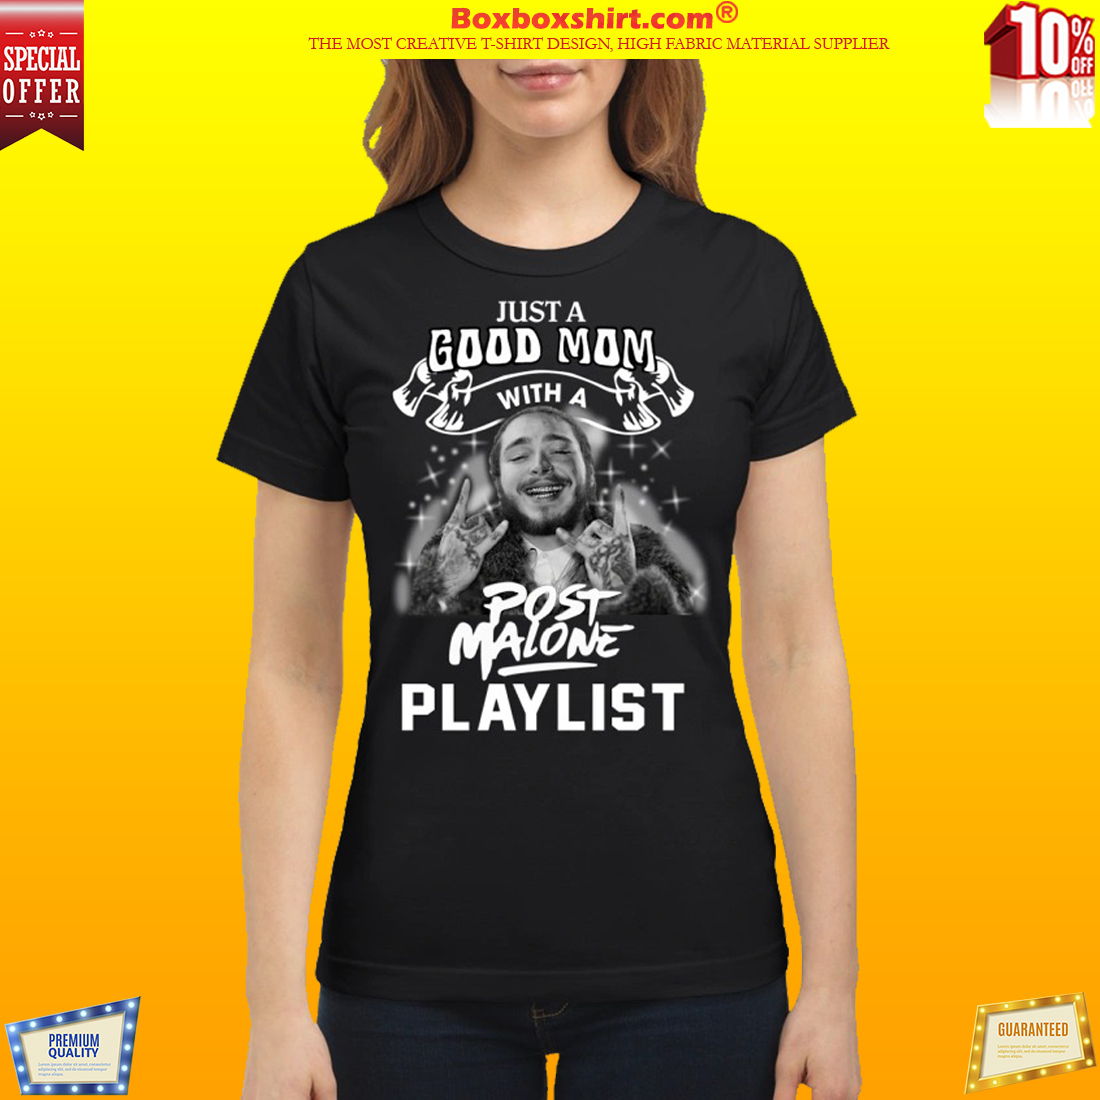 Just a good mom with a Post Malone playlist classic shirt